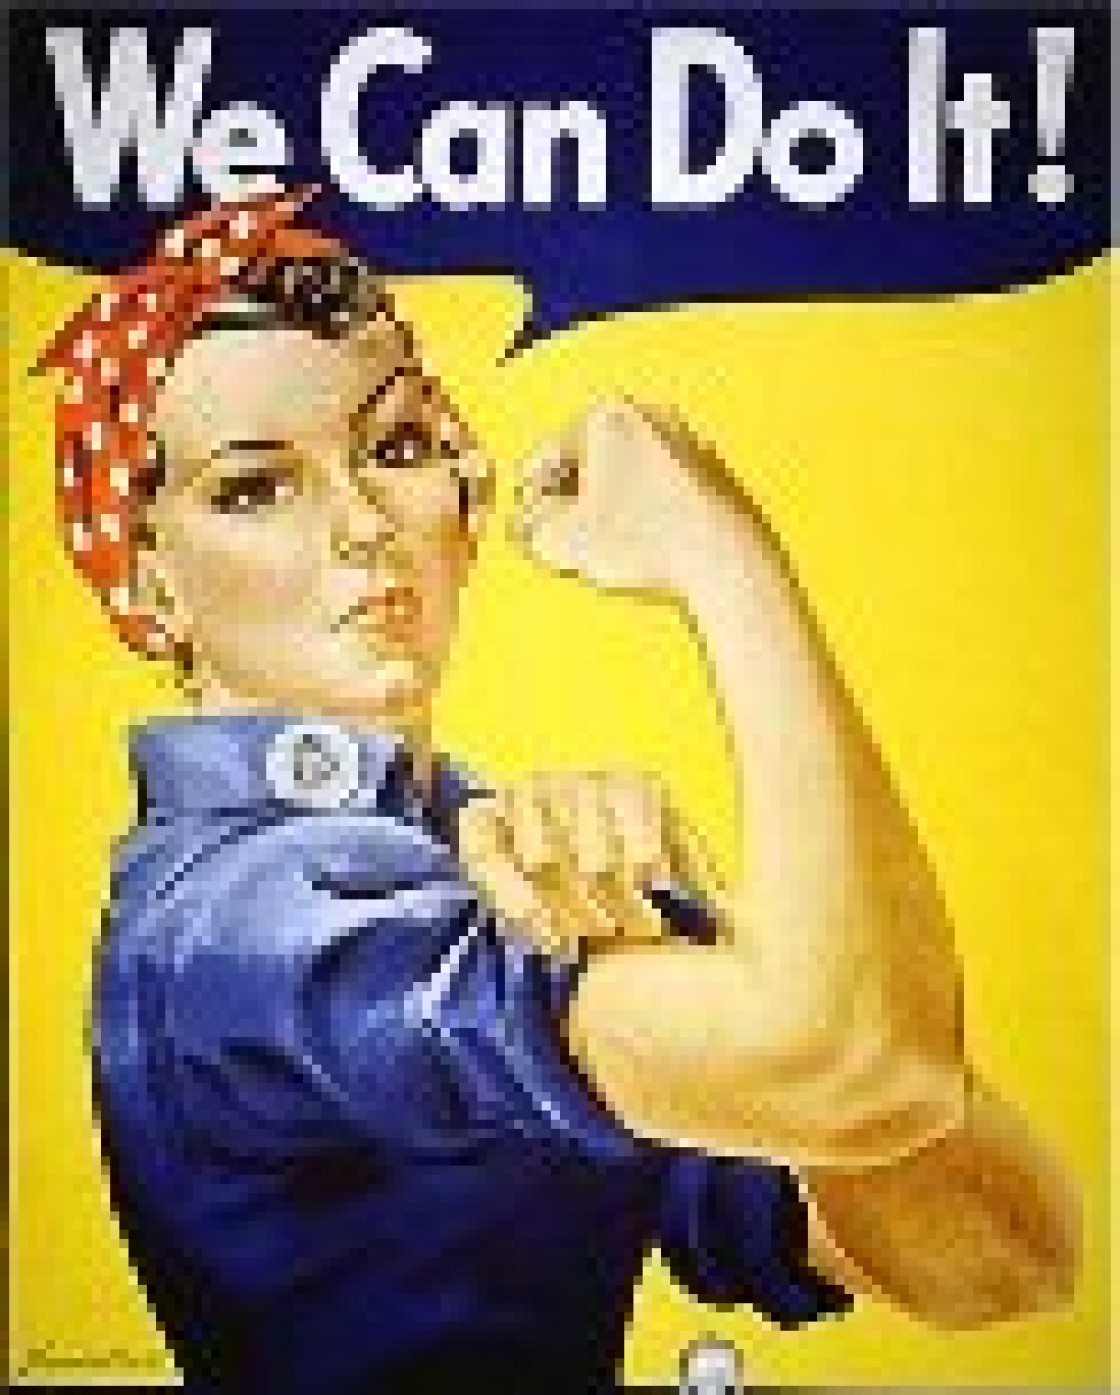 cropped-Rose-the-riveter-e-mail-small.jpg